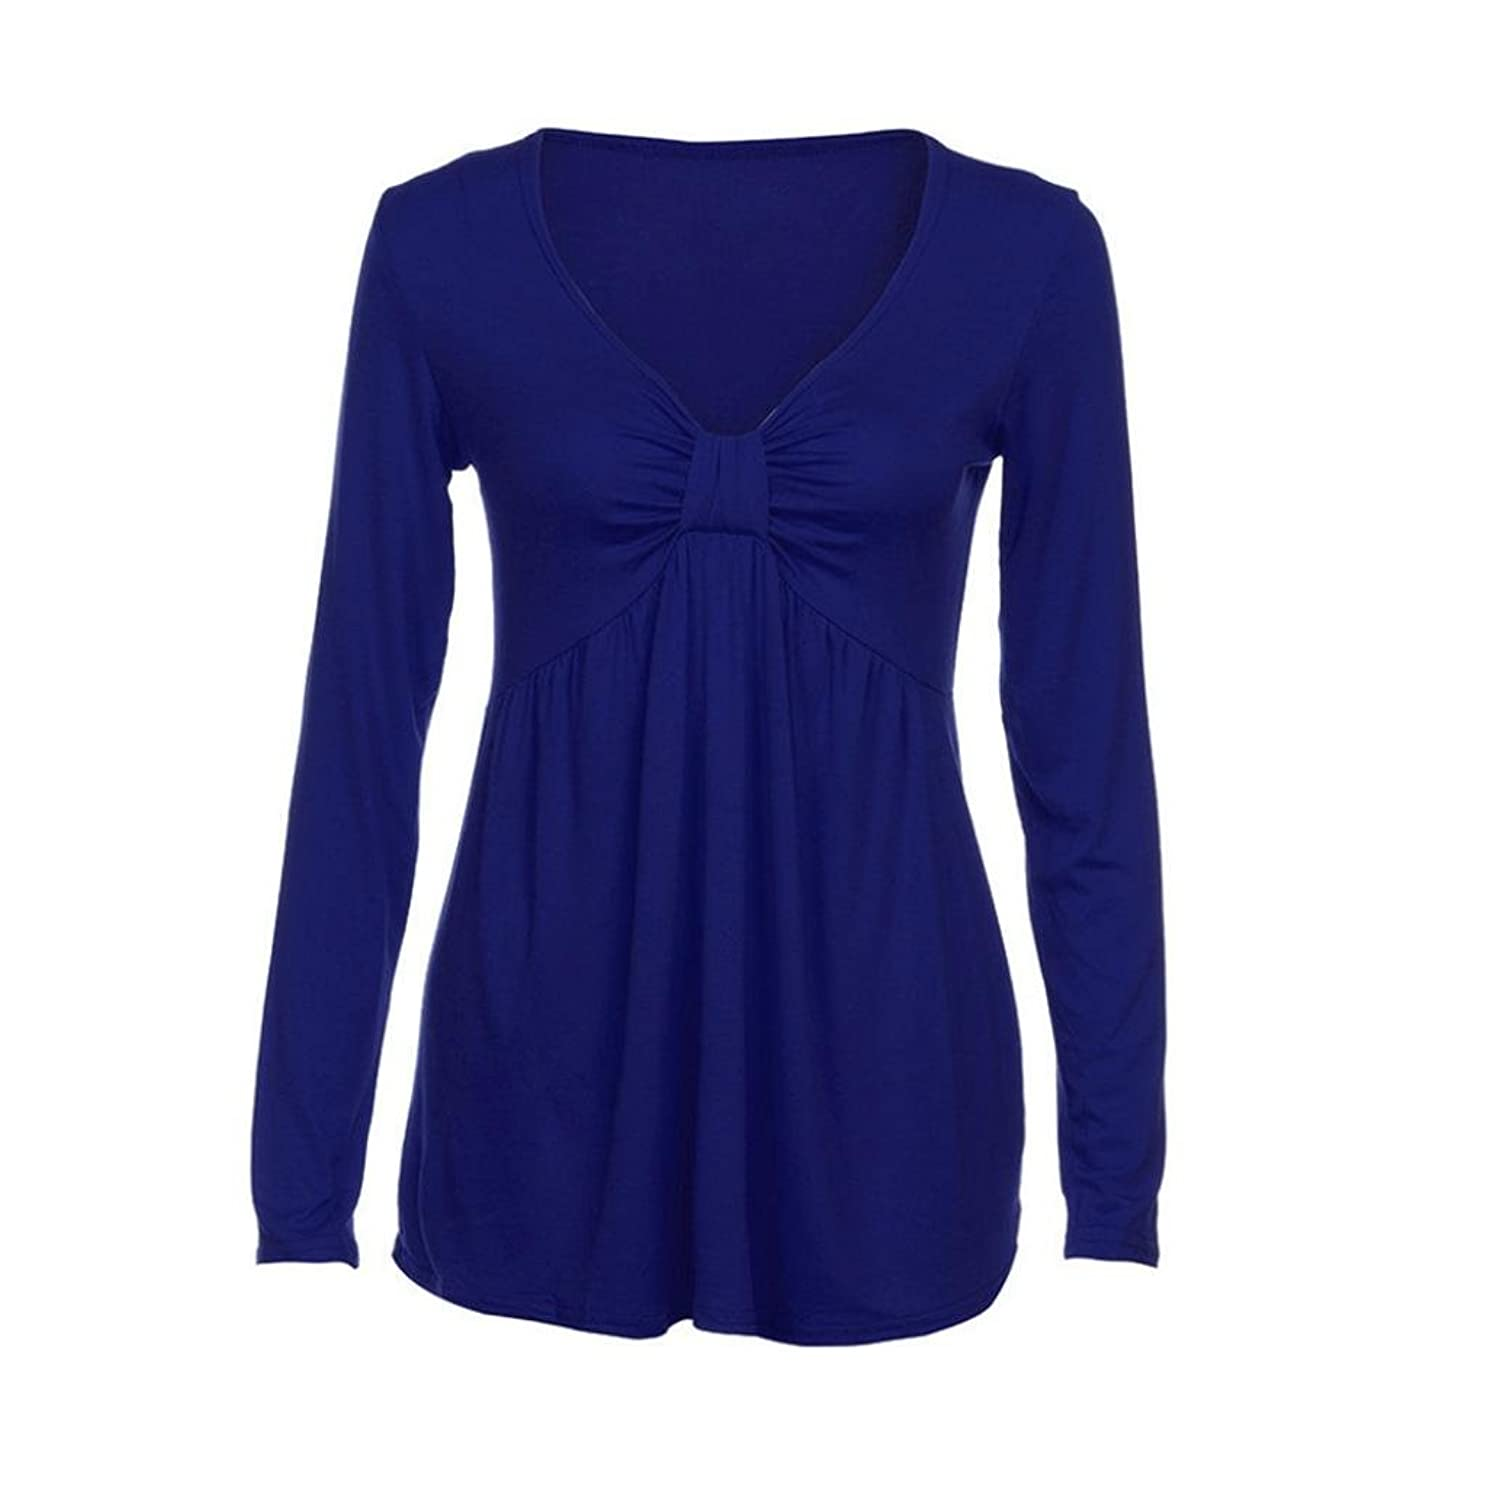 Longra Womens Sexy V-Neck Ruched Bubble T-Shirt Tops Tee ❤ Lady Spring Long  Sleeve Sweatshirt Pullover Tunic Blouse Tops: Amazon.co.uk: Clothing